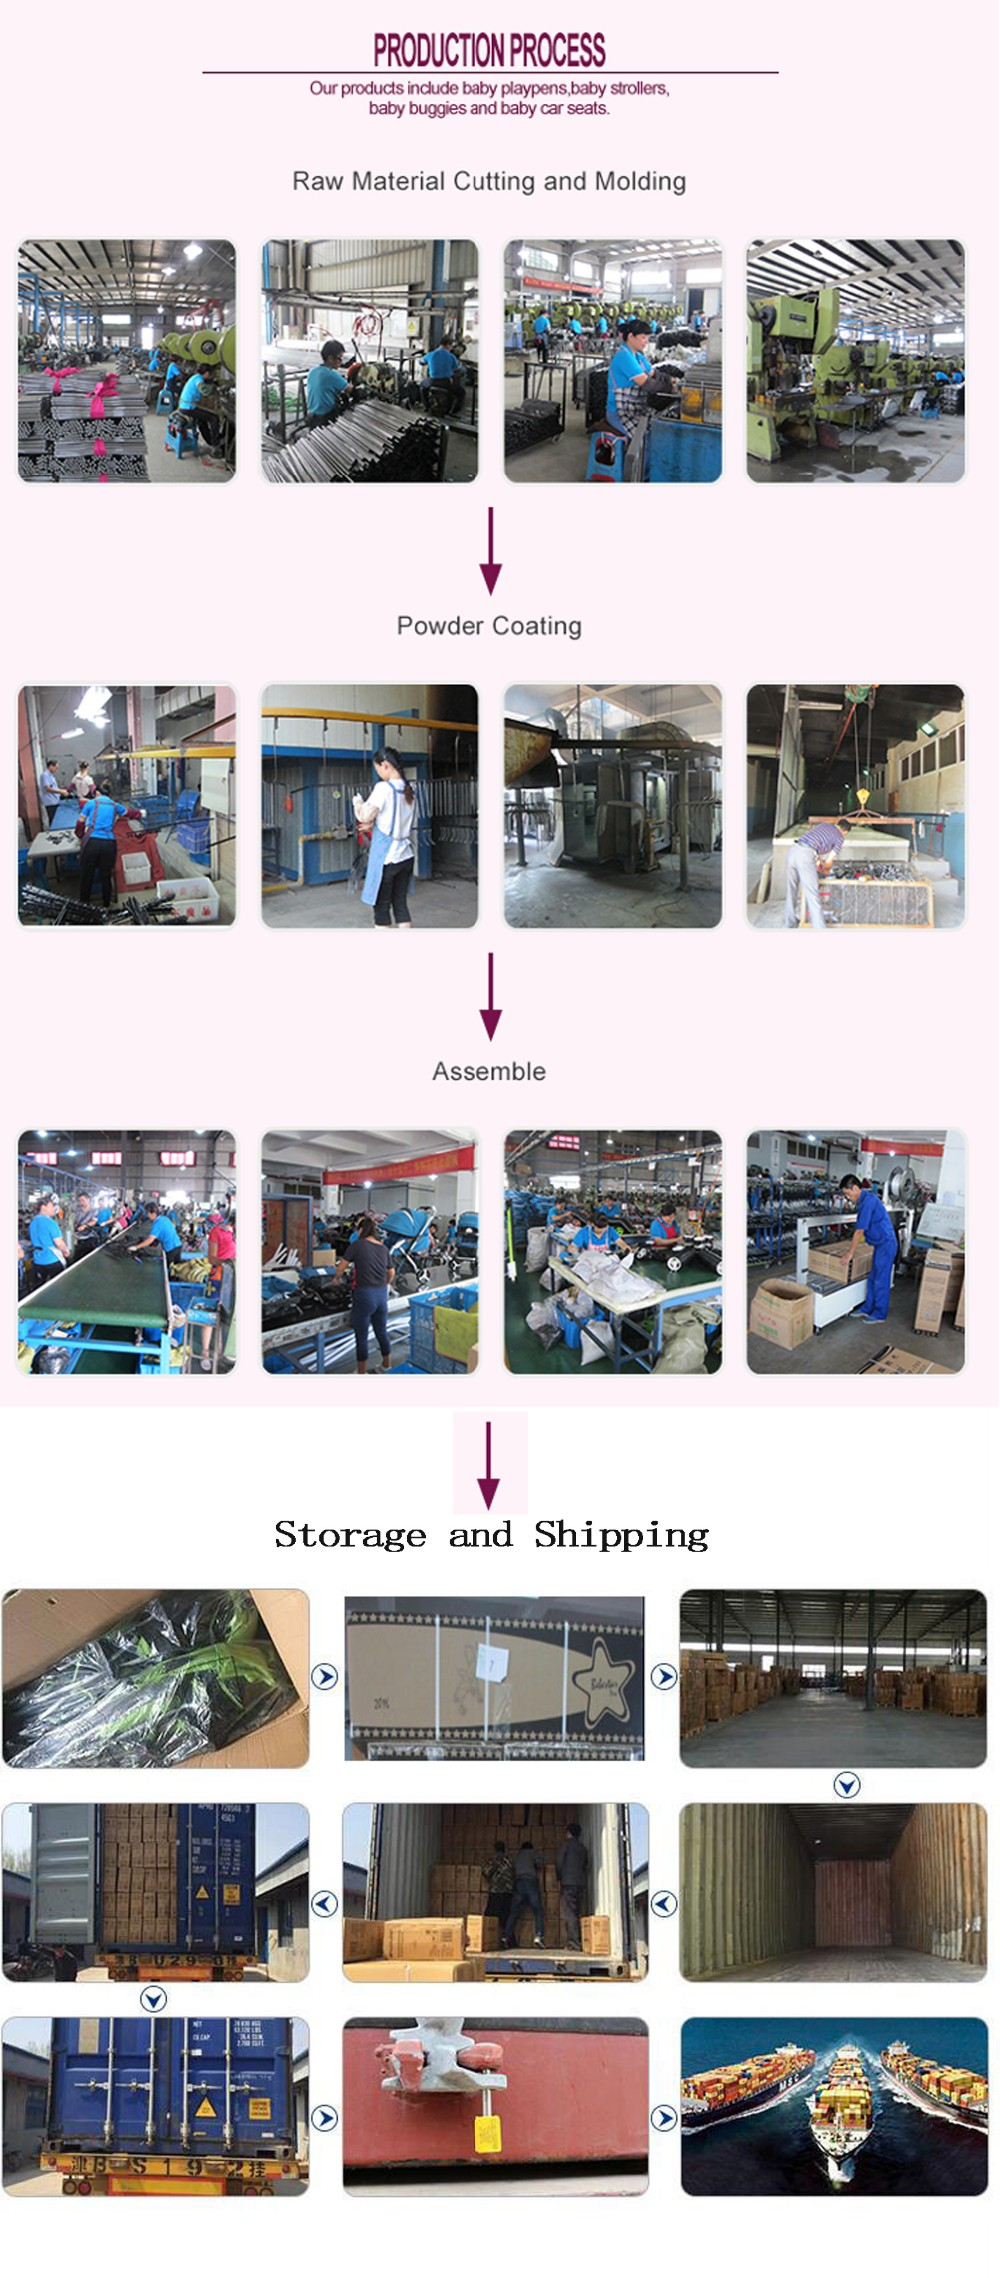 baby carriage factory production process